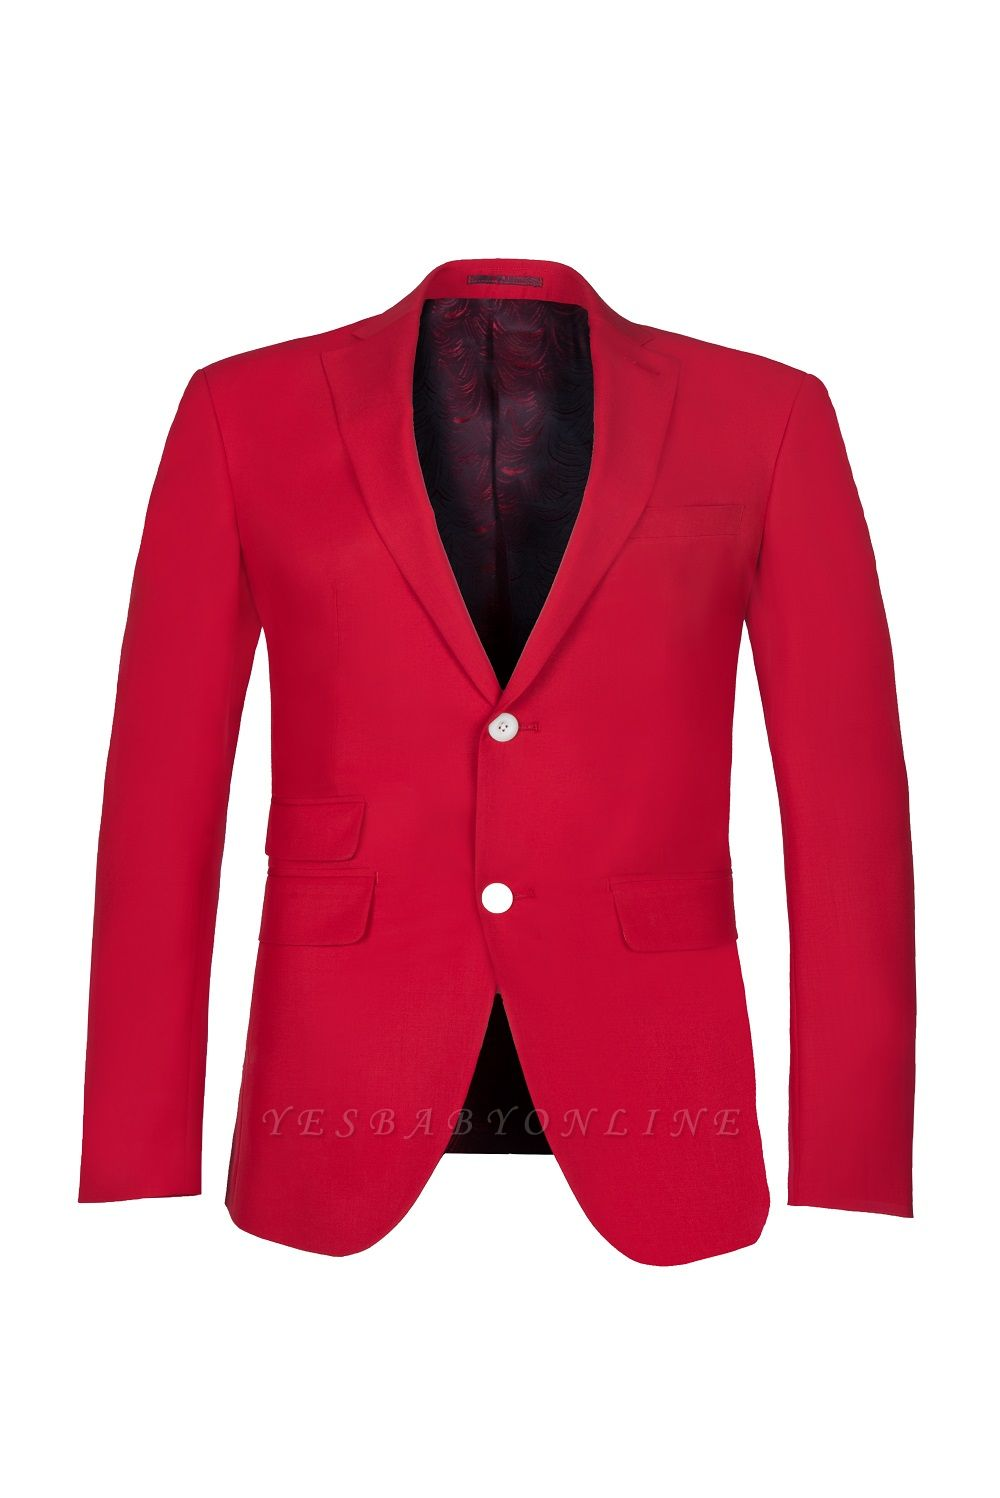 Customize Red Two Button High Quality Back Vent Wedding Suit